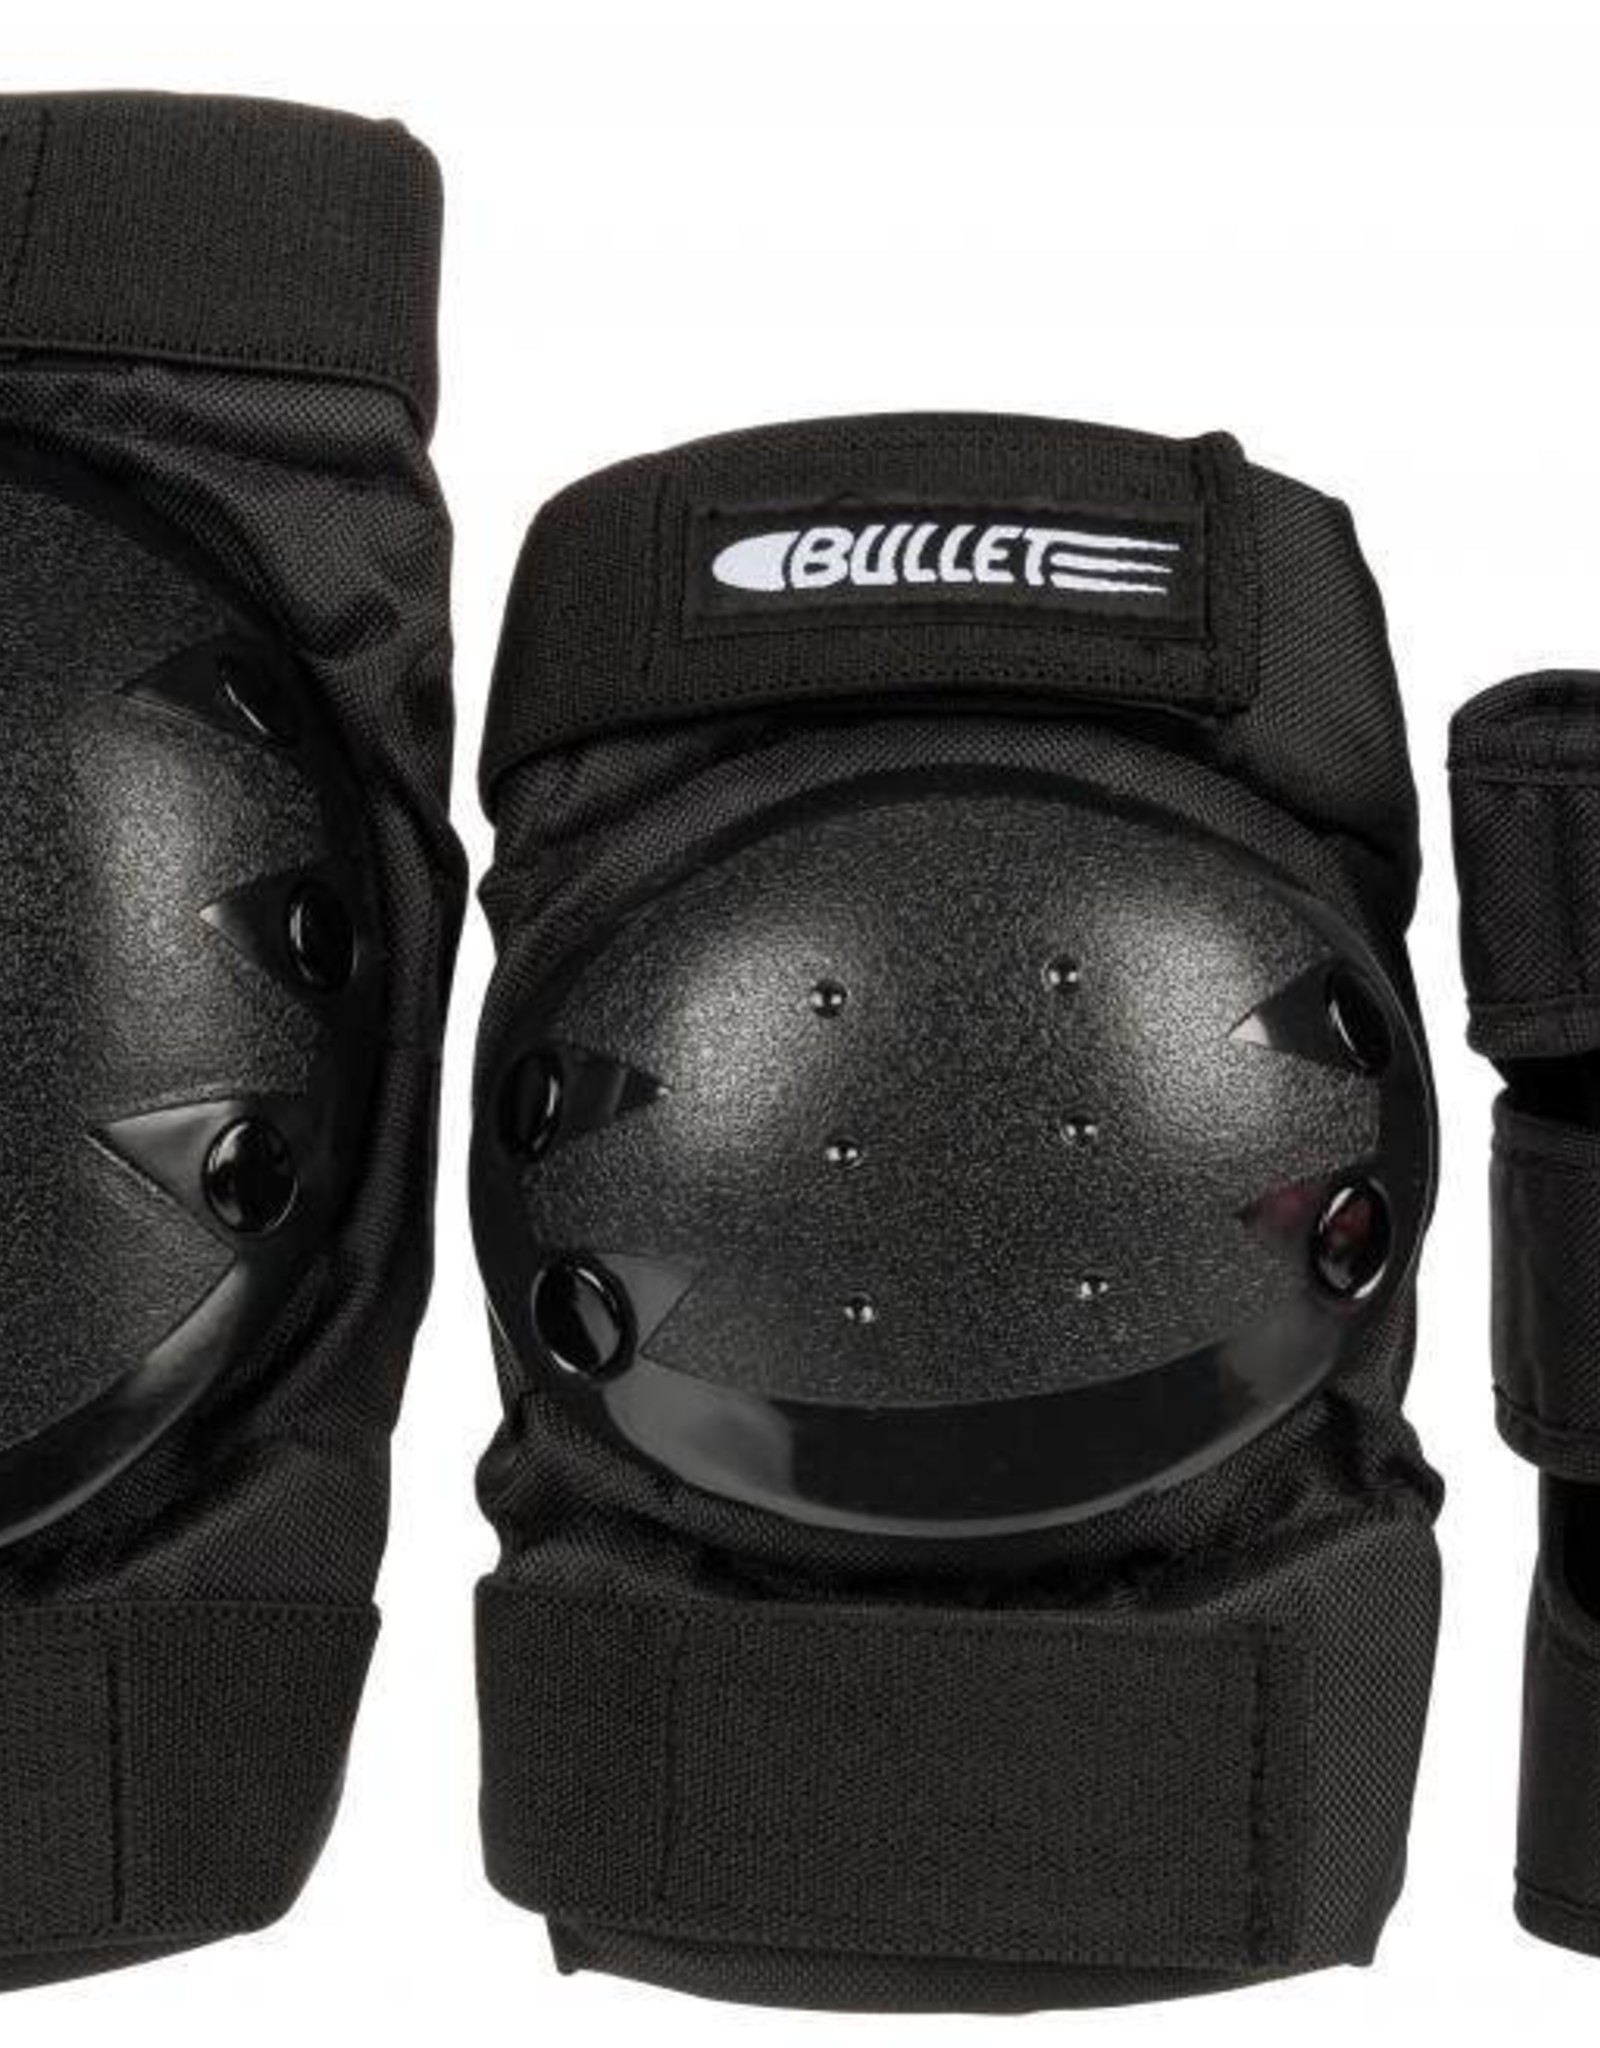 Bullet Bullet - PAD SET - Adult